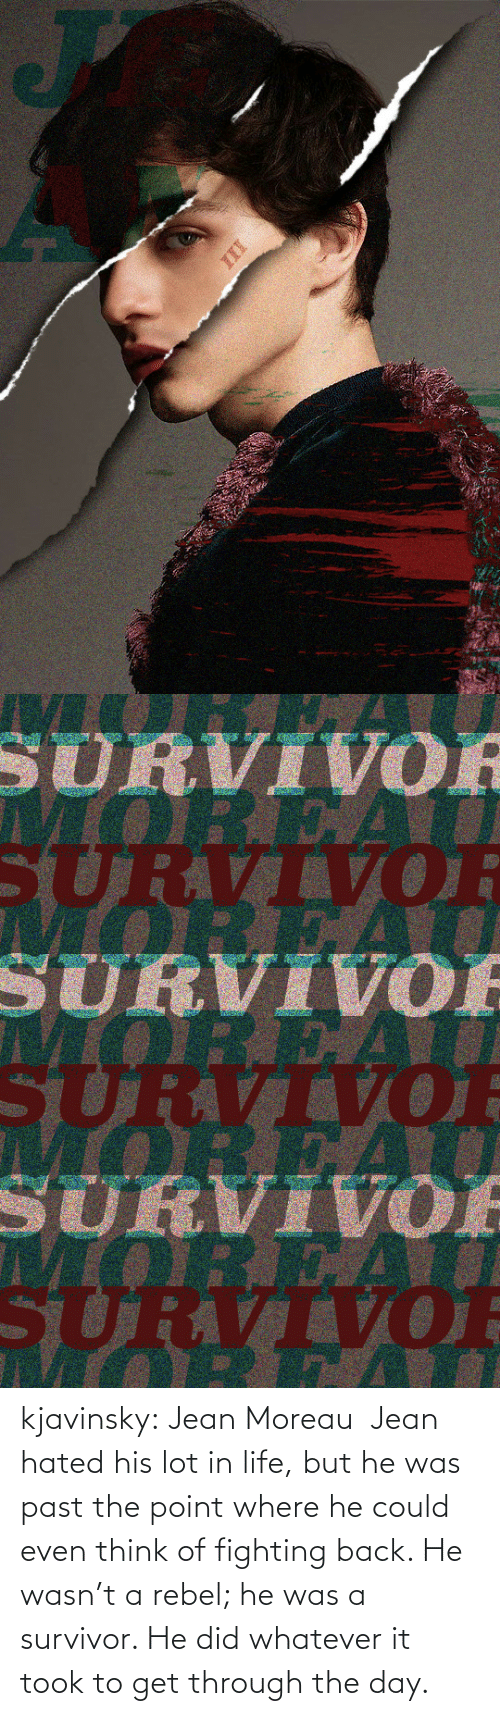 Survivor: kjavinsky:  Jean Moreau Jean hated his lot in life, but he was past the point where he could even think of fighting back. He wasn't a rebel; he was a survivor. He did whatever it took to get through the day.